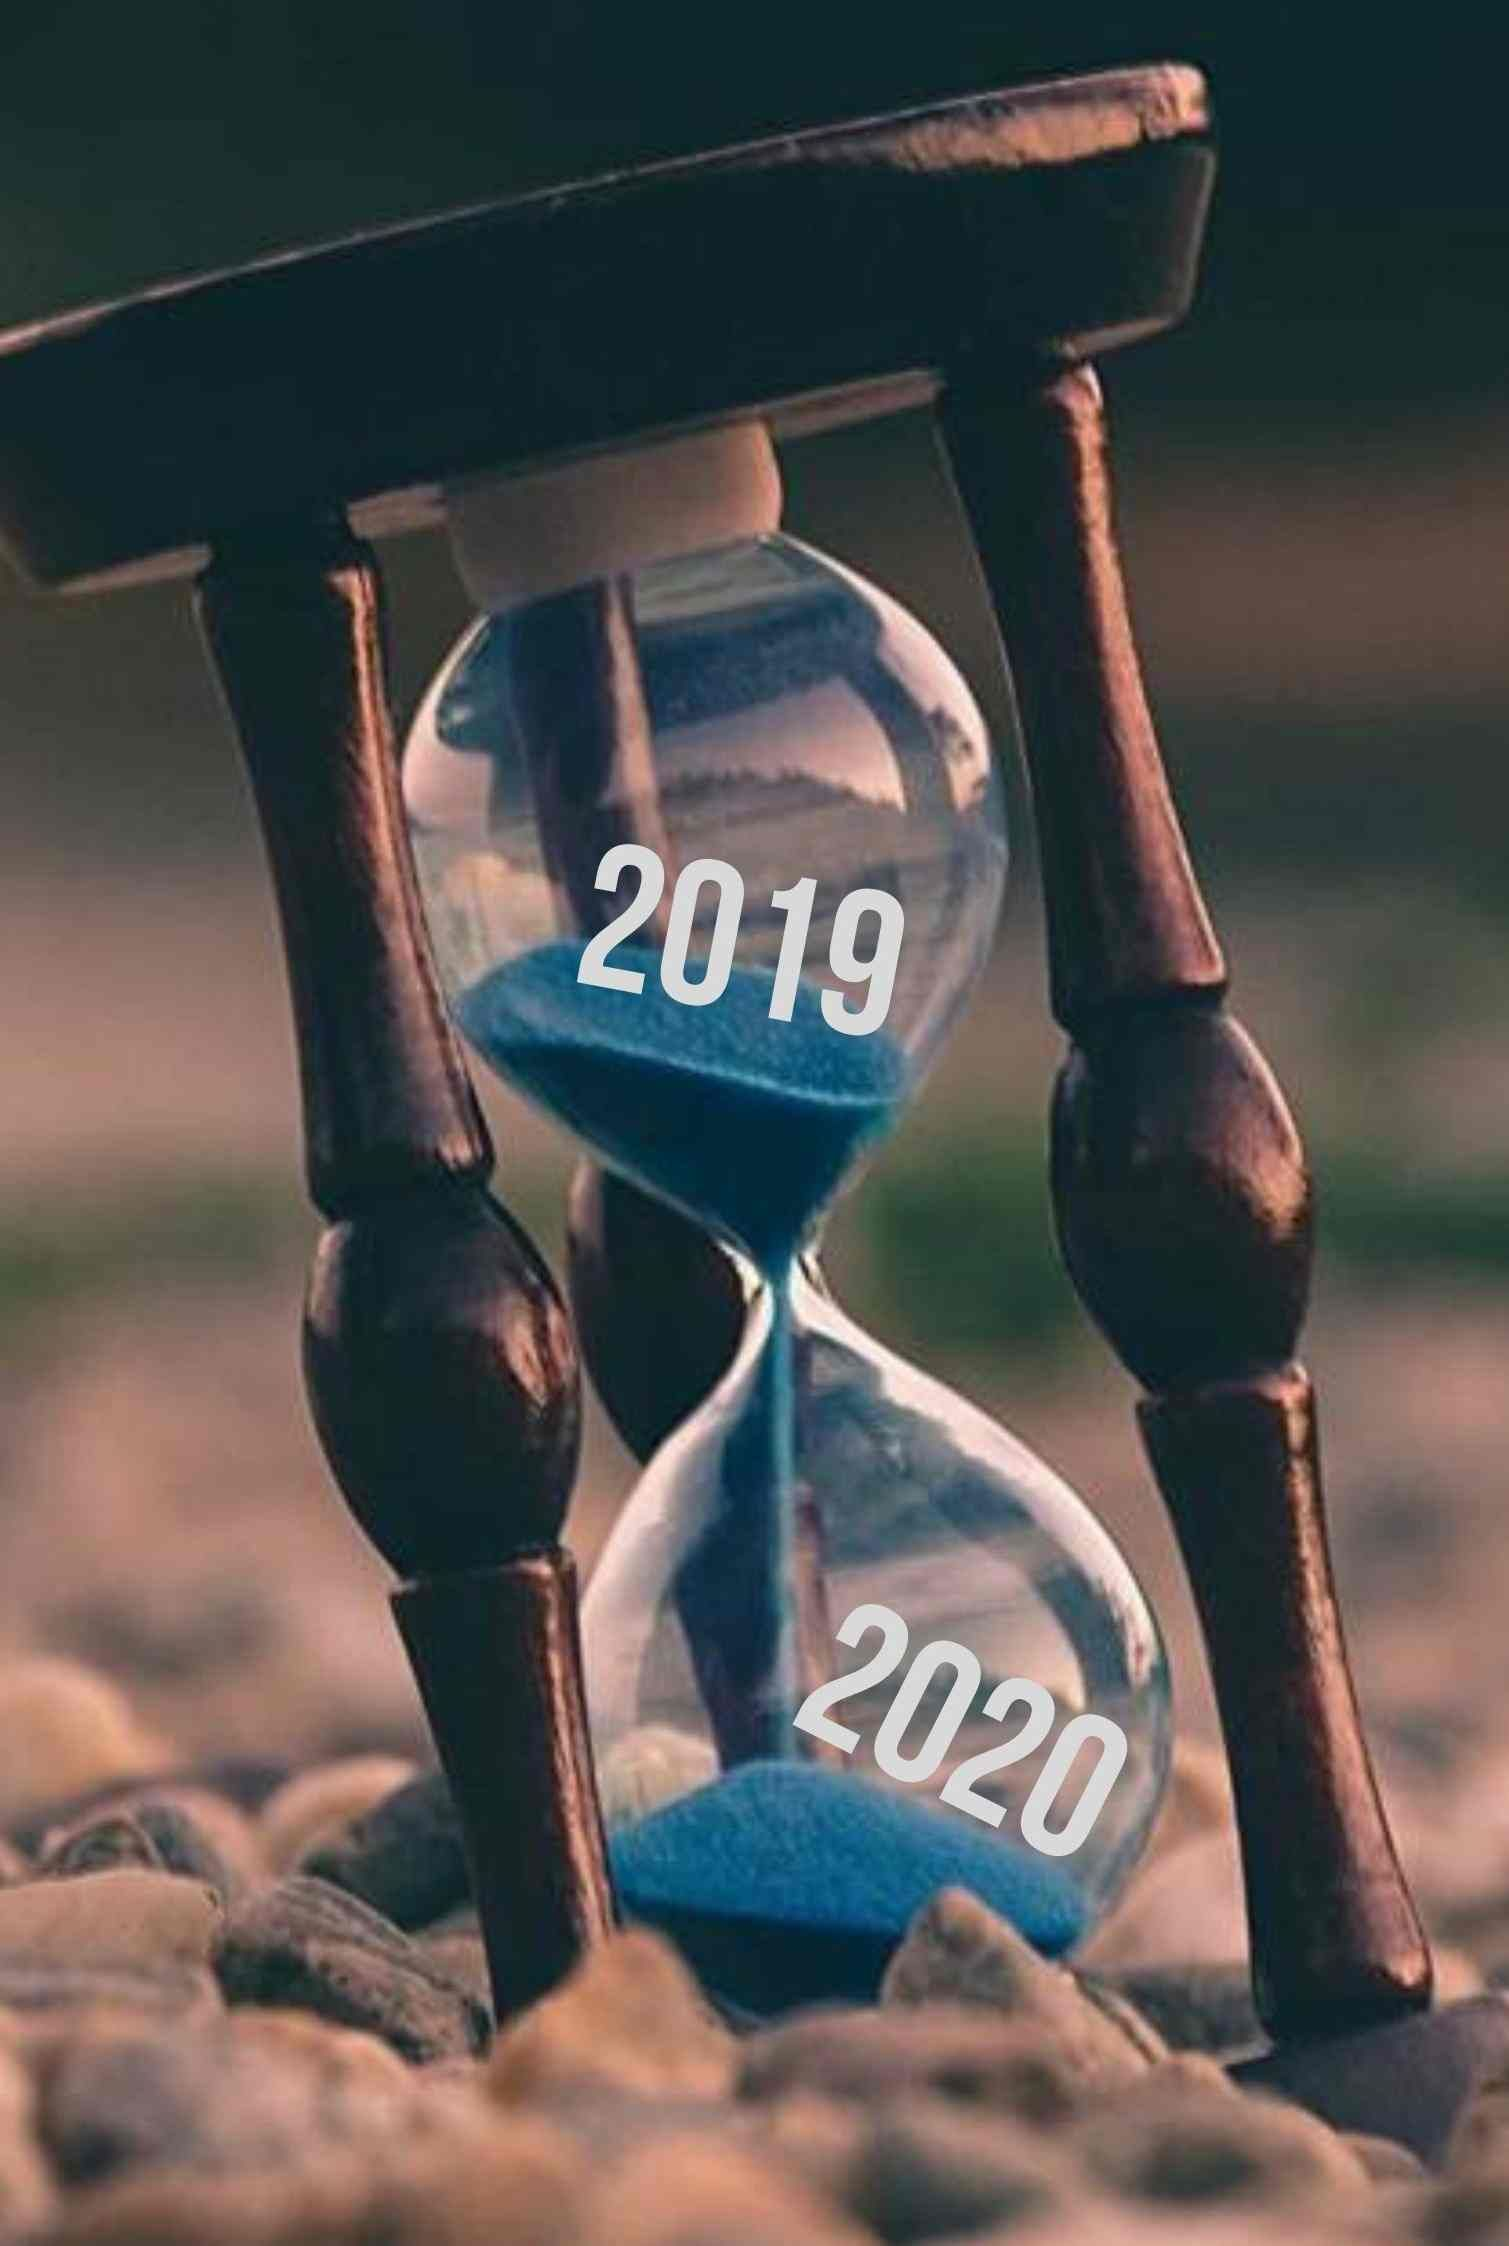 New year wishes images 2020 for January 1st 2020 : New year sand timer for this ... - #1st #images #January #sand #timer #wishes #Year #2020quotes